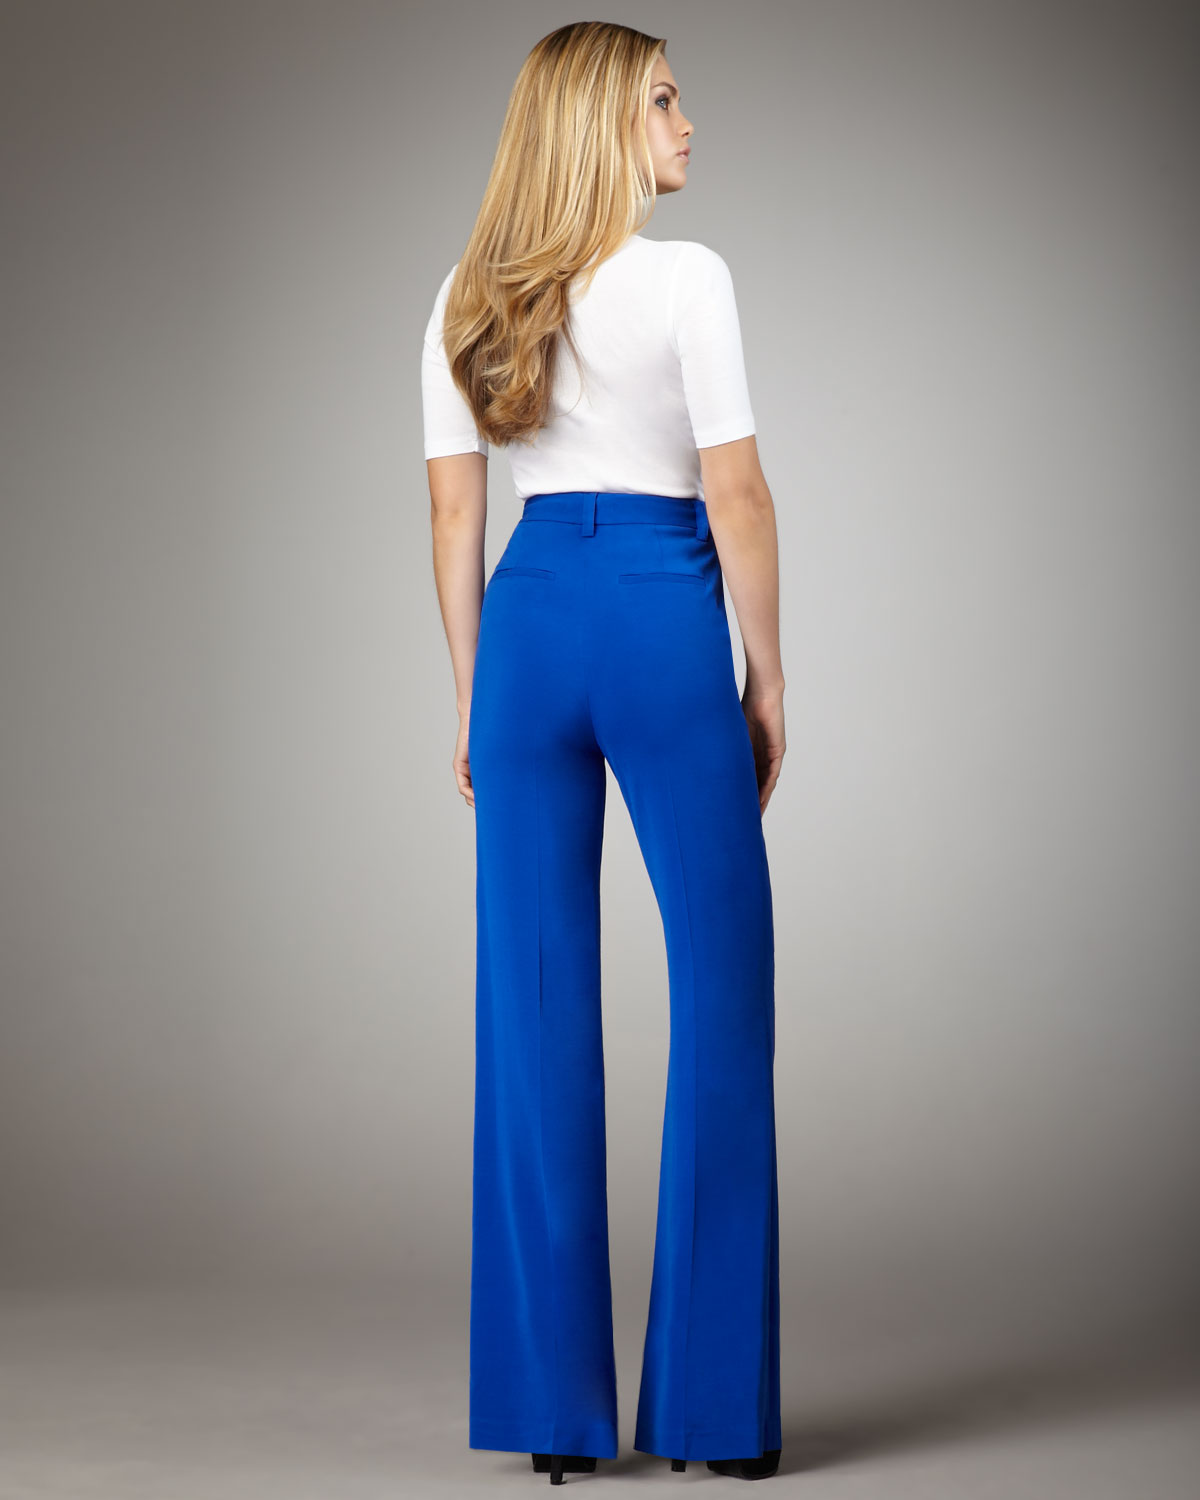 Alice   olivia High-waist Wide-leg Pants in Blue | Lyst